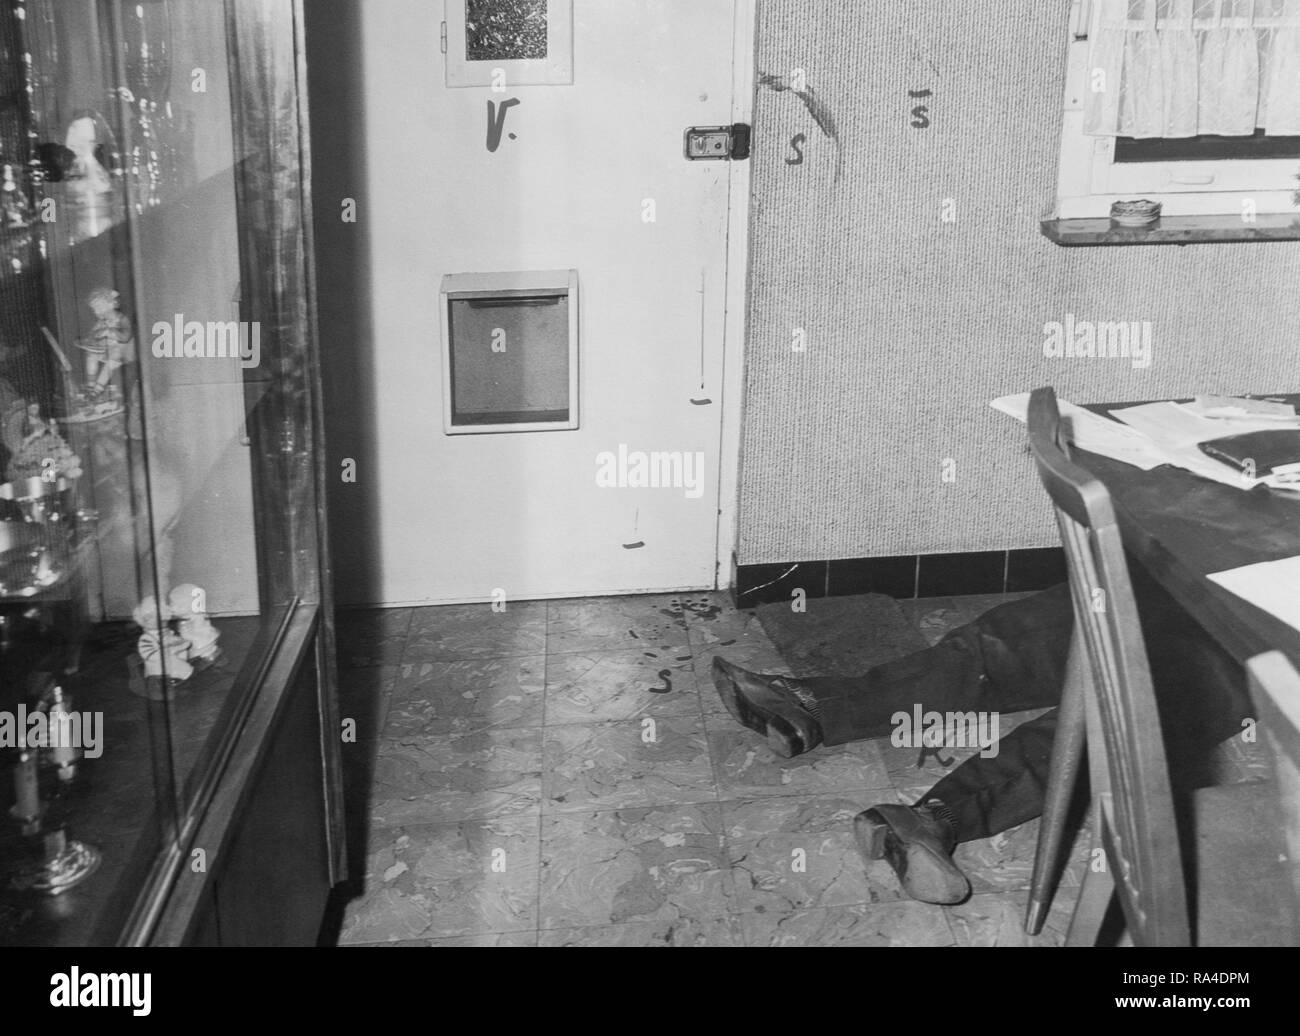 Twentieth century black and white forensic photo of crime scene showing blood stains and corpse of murdered man lying on the ground inside house - Stock Image